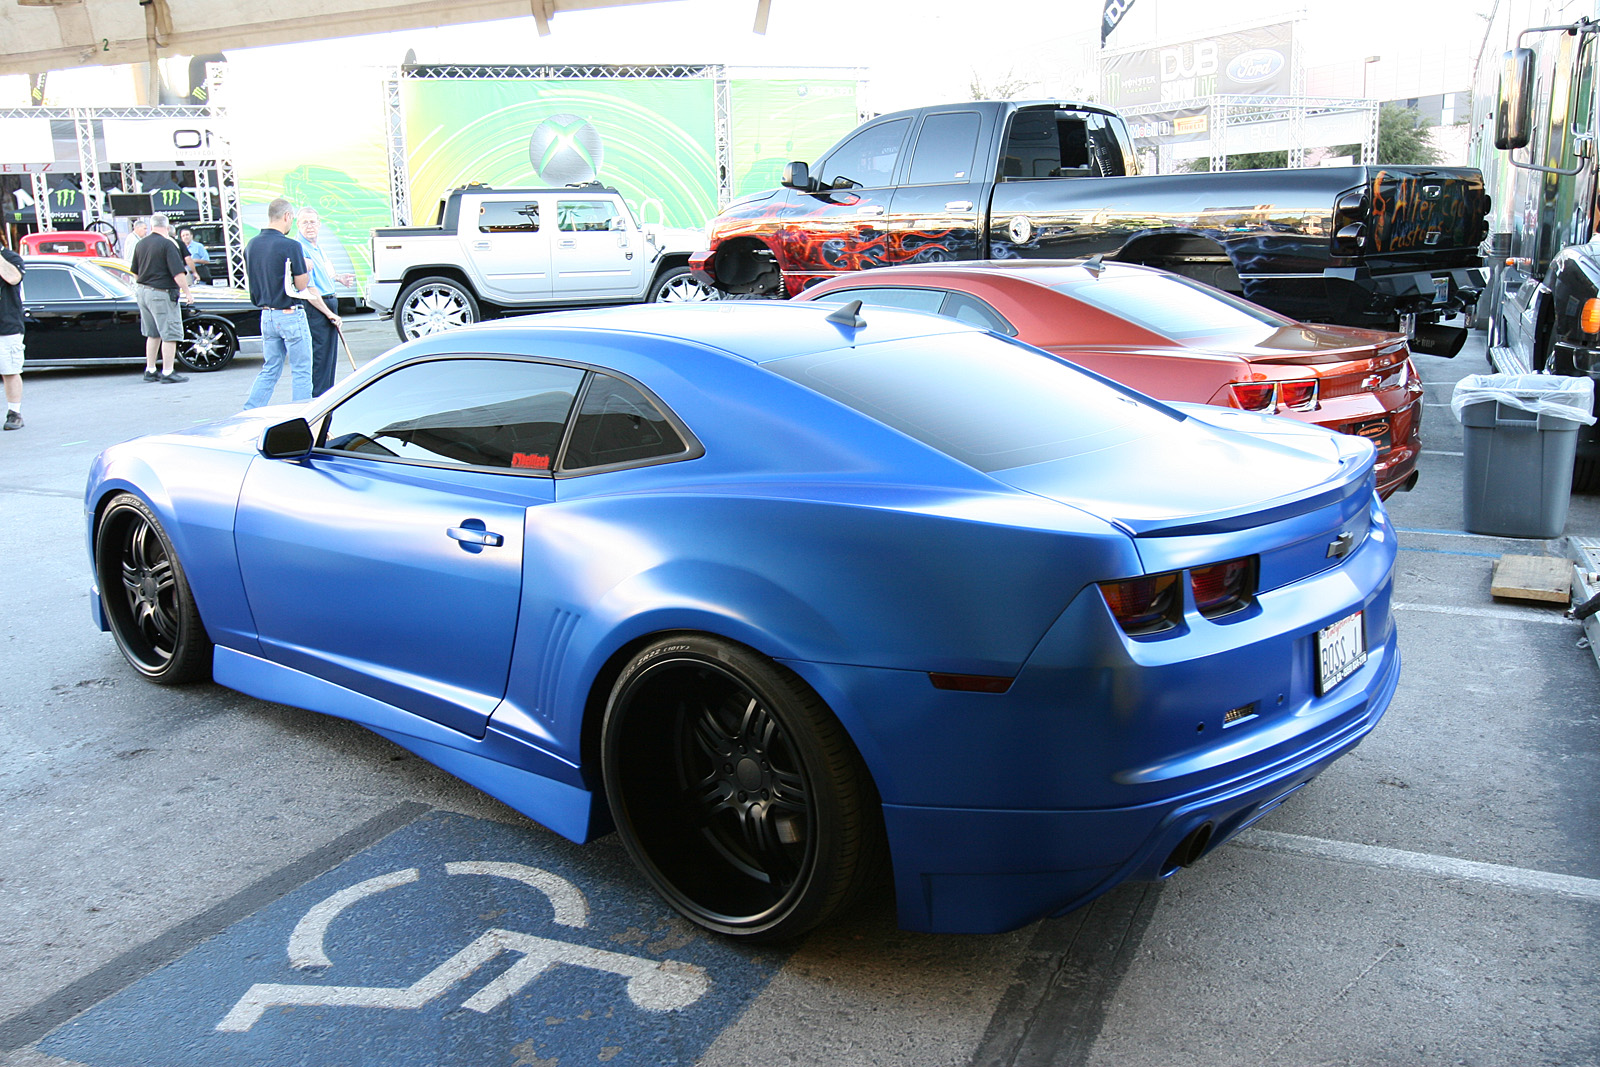 Matte Blue Chevy Camaro Widebody Modified Cars And Auto